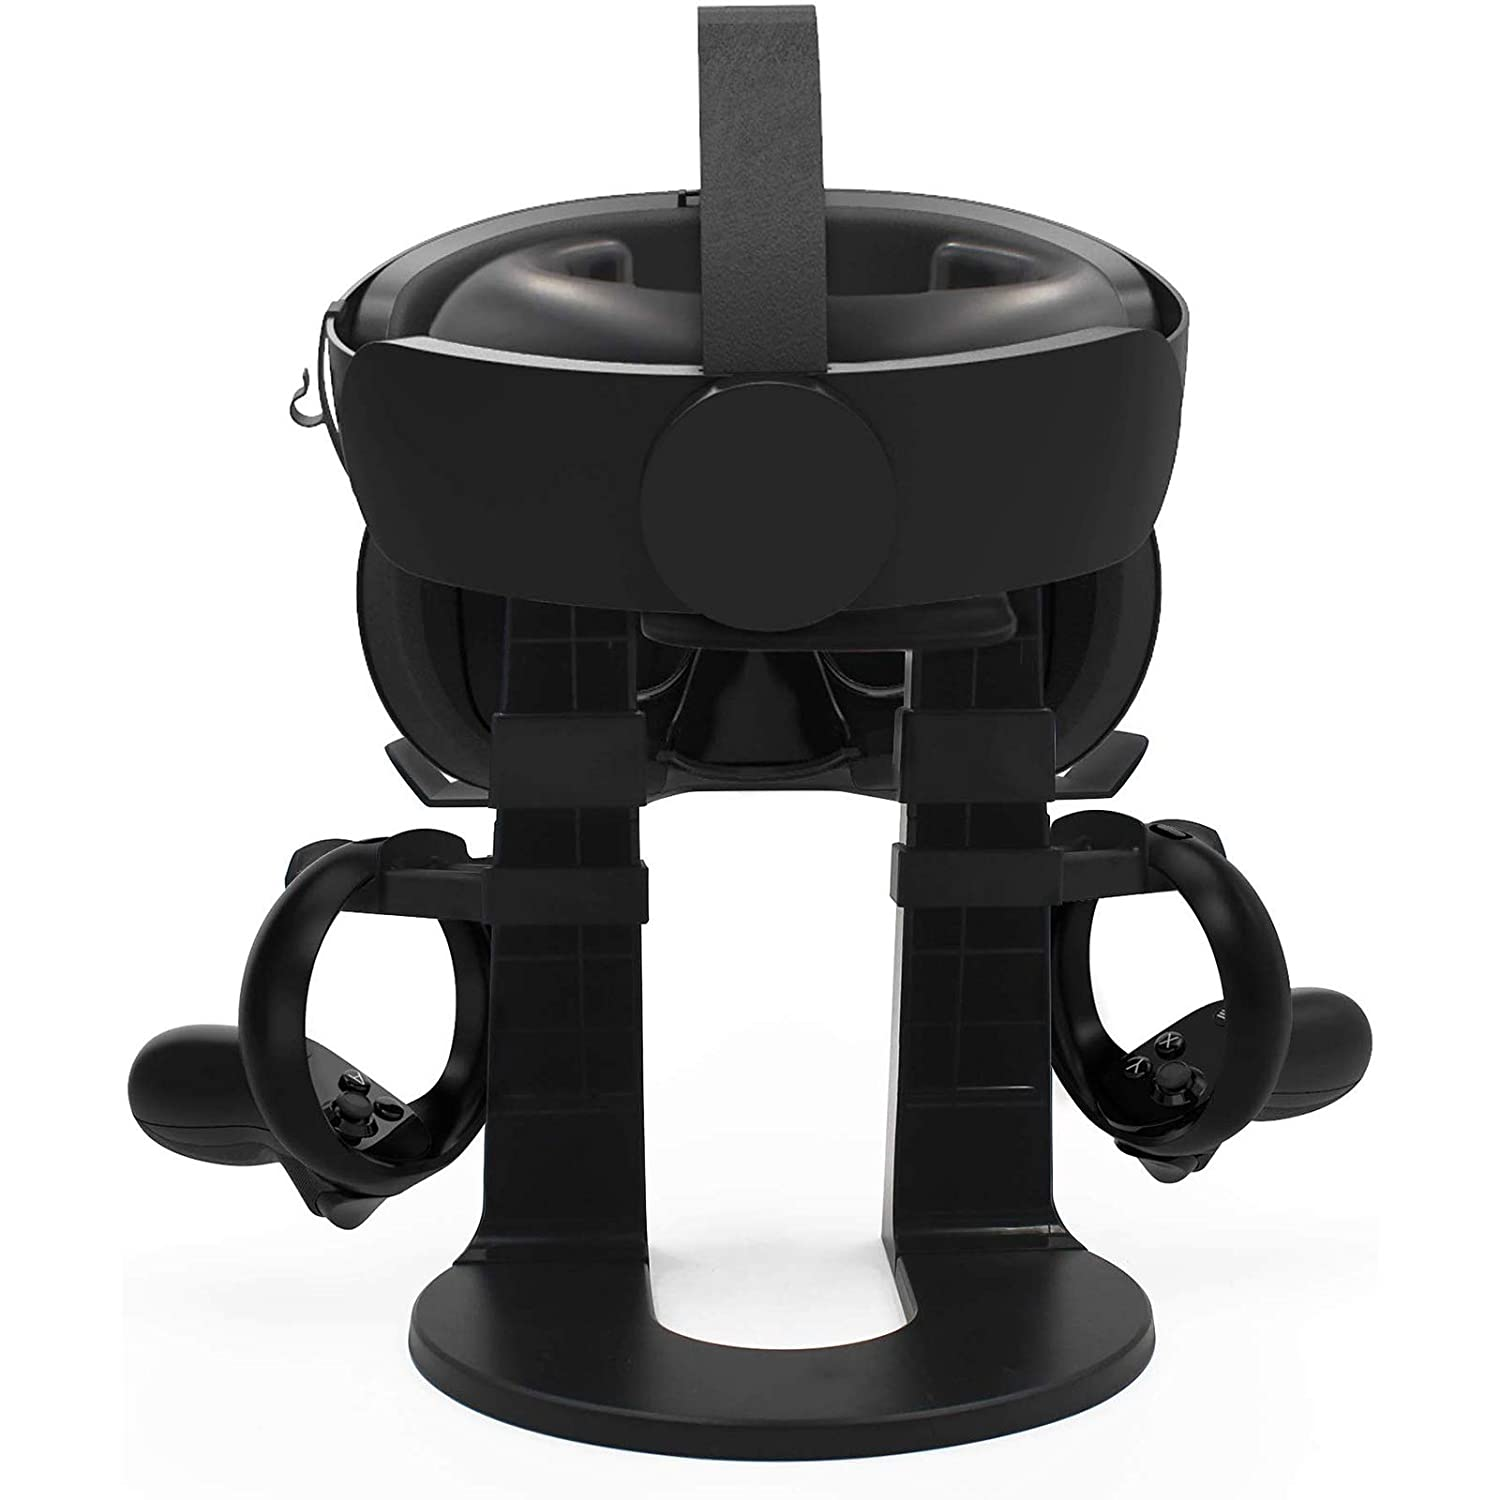 LICHIFIT AMVR VR Stand Headset Display Holder Controller Mount Station for Oculus Rift S//Oculus Quest Virtual Reality Headset and Touch Controllers Organizer